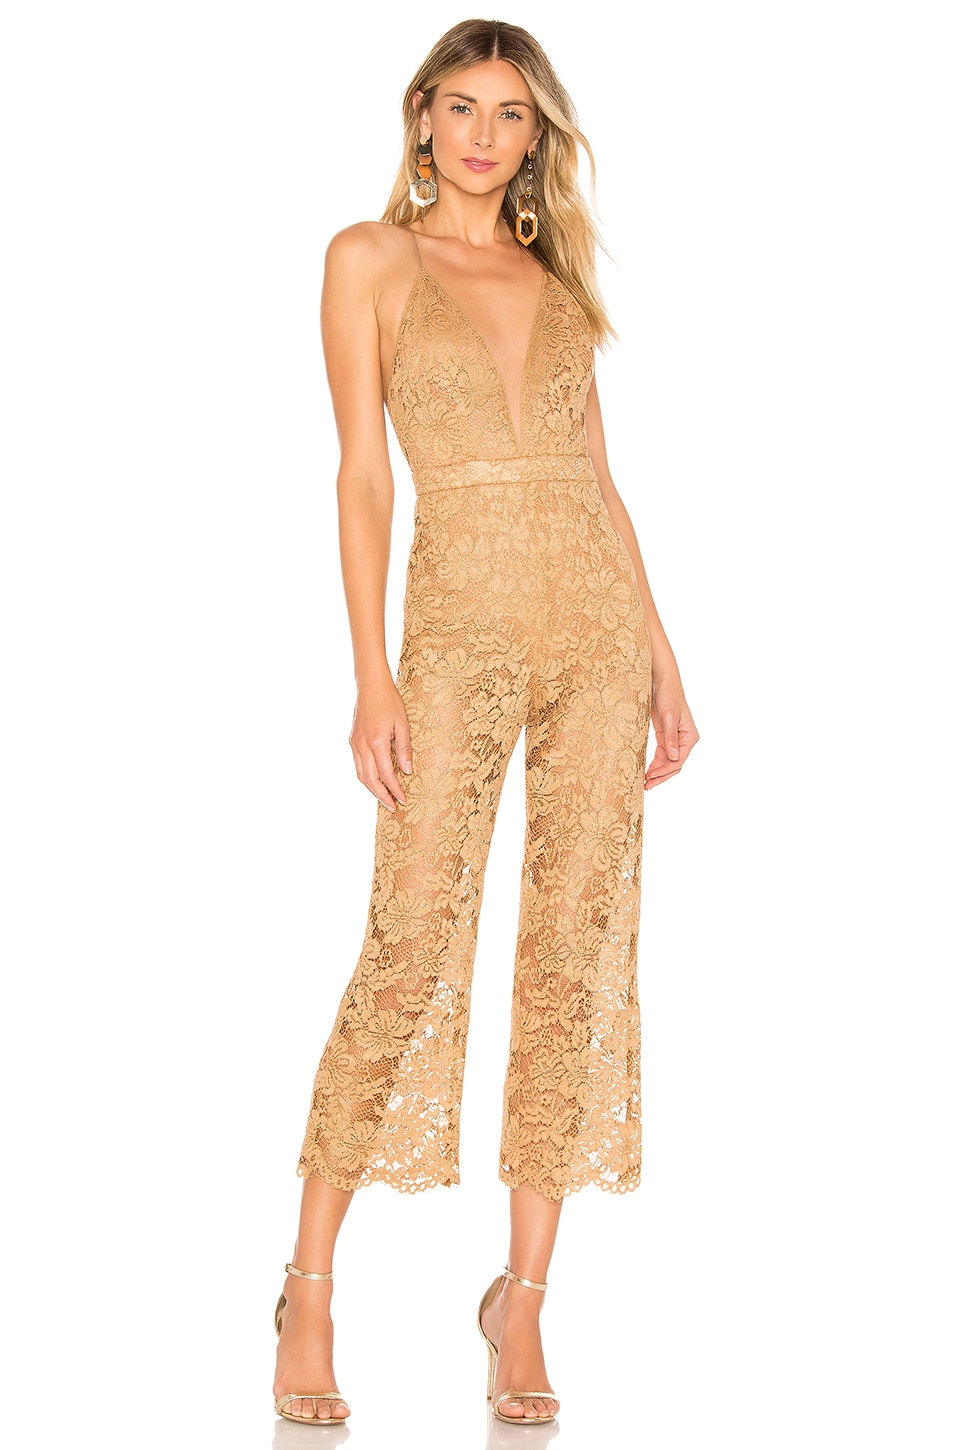 MAJORELLE Brandy Jumpsuit in Golden Luxe